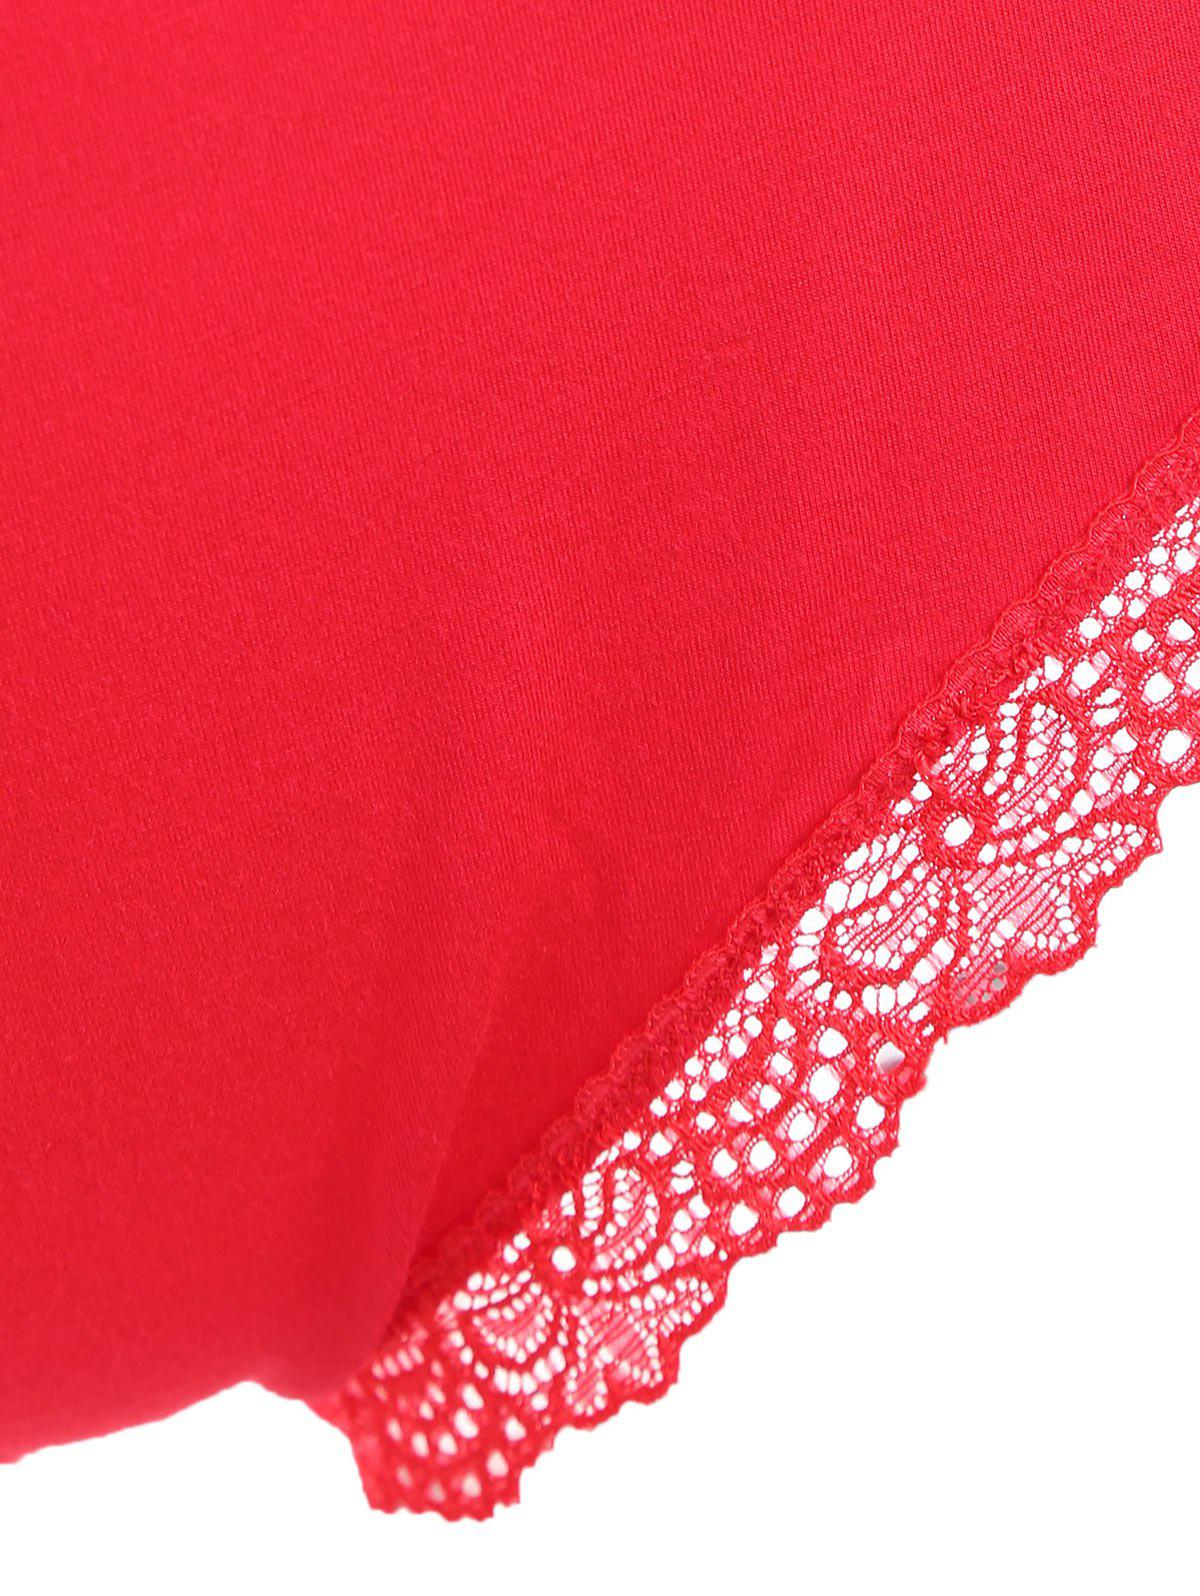 Lace Criss Cross Sheer Slip Teddy - RED S